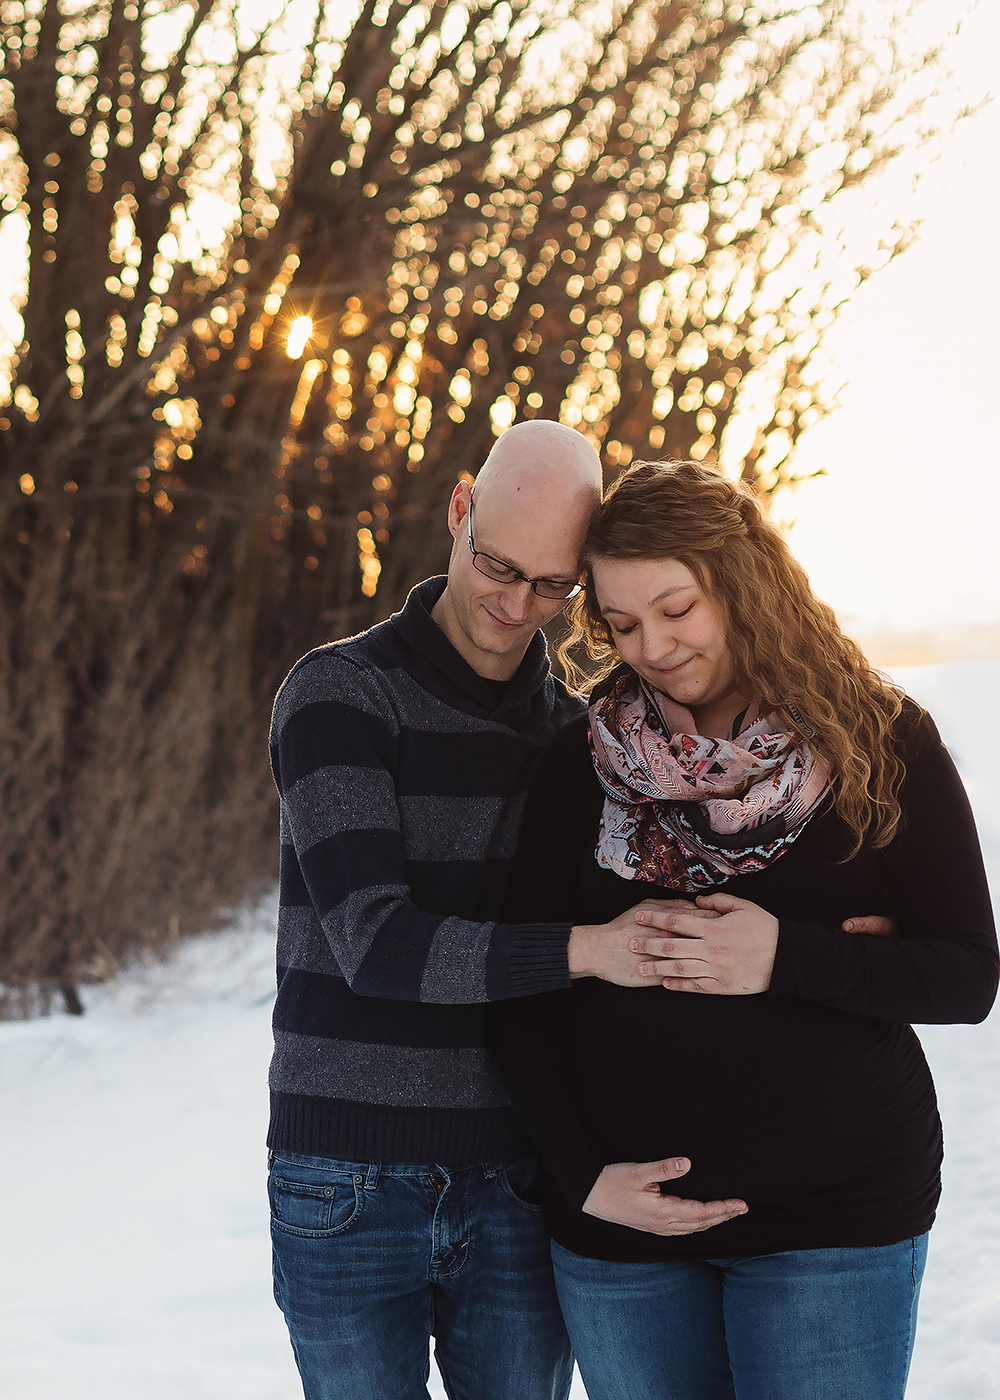 Edmonton Maternity Photographer_Trinity Sneak Peek 4.jpg